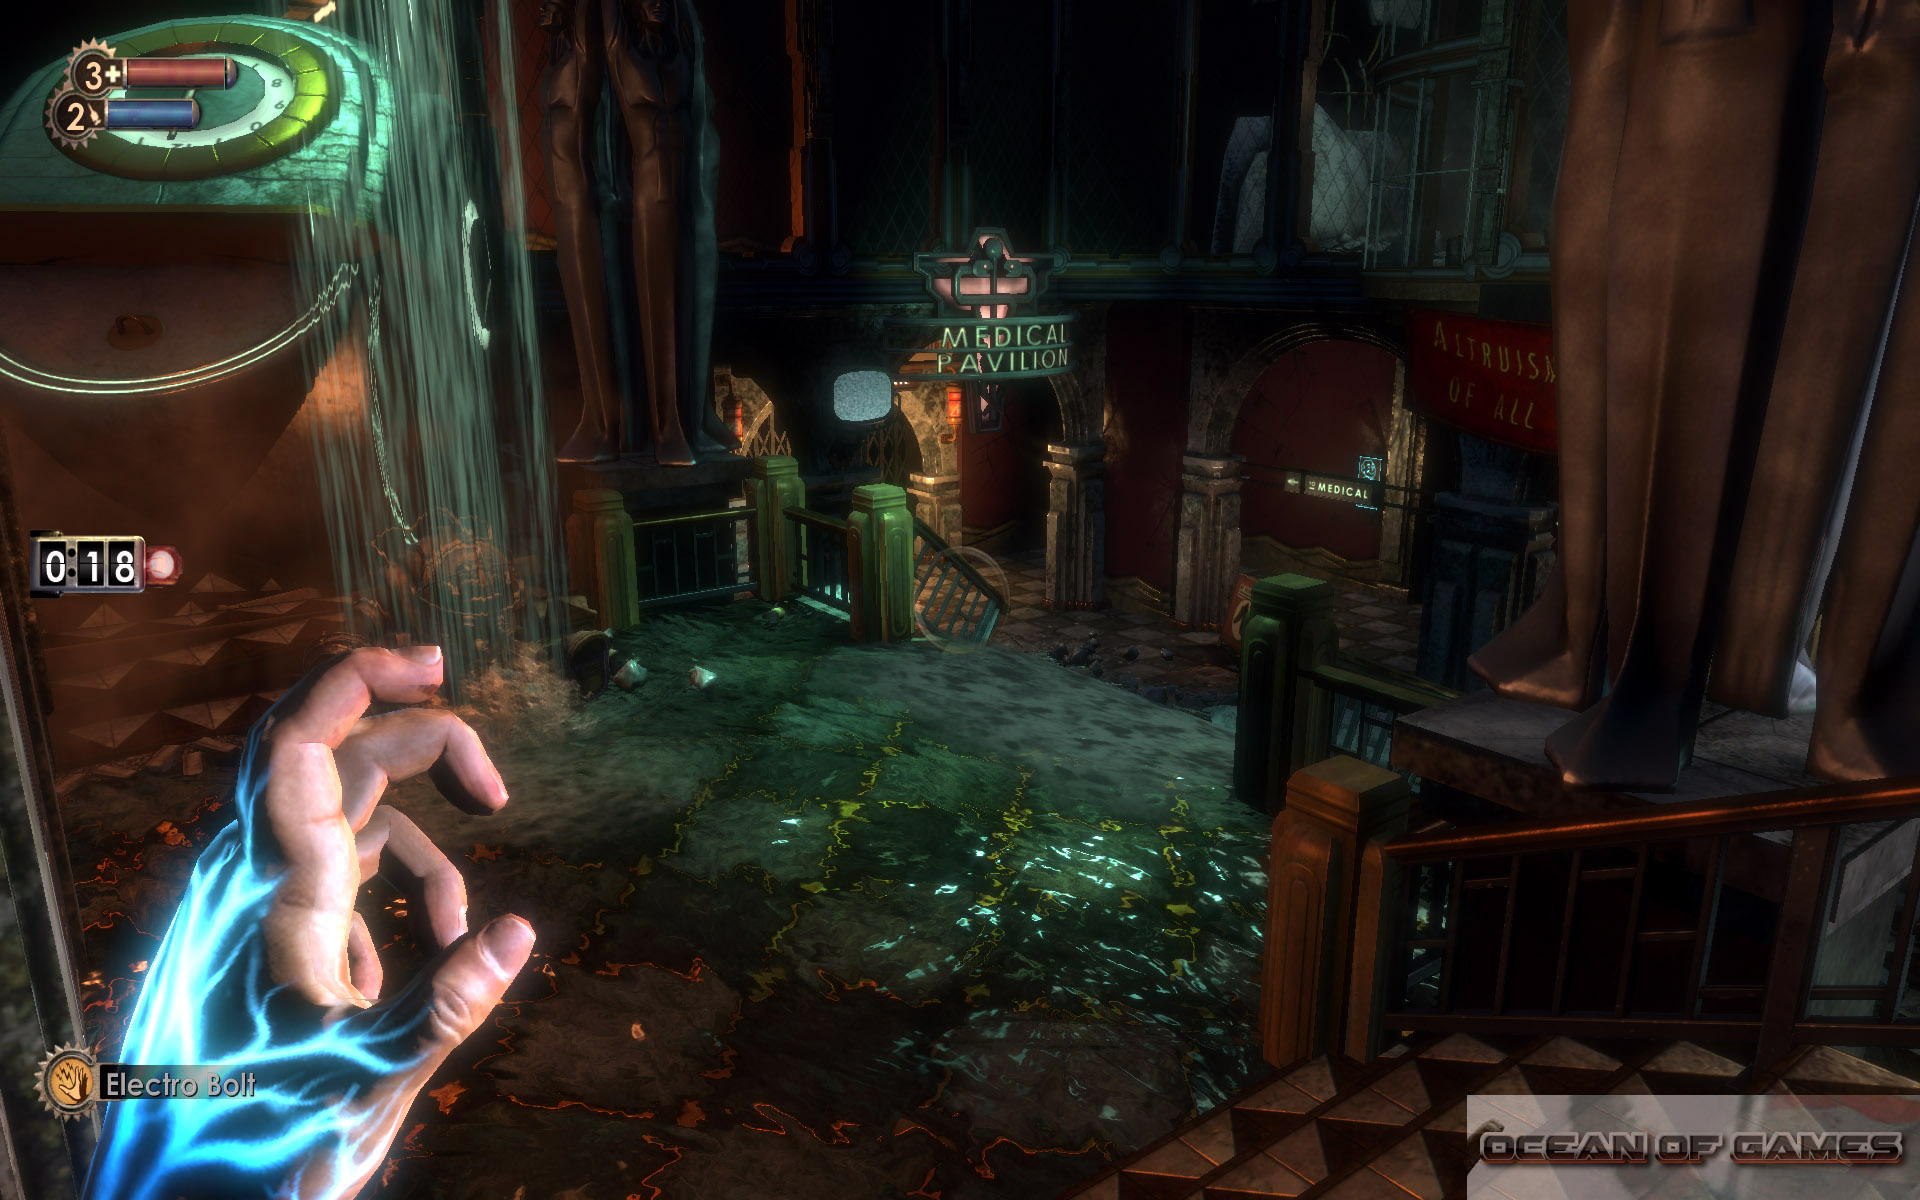 Bioshock 1 Features